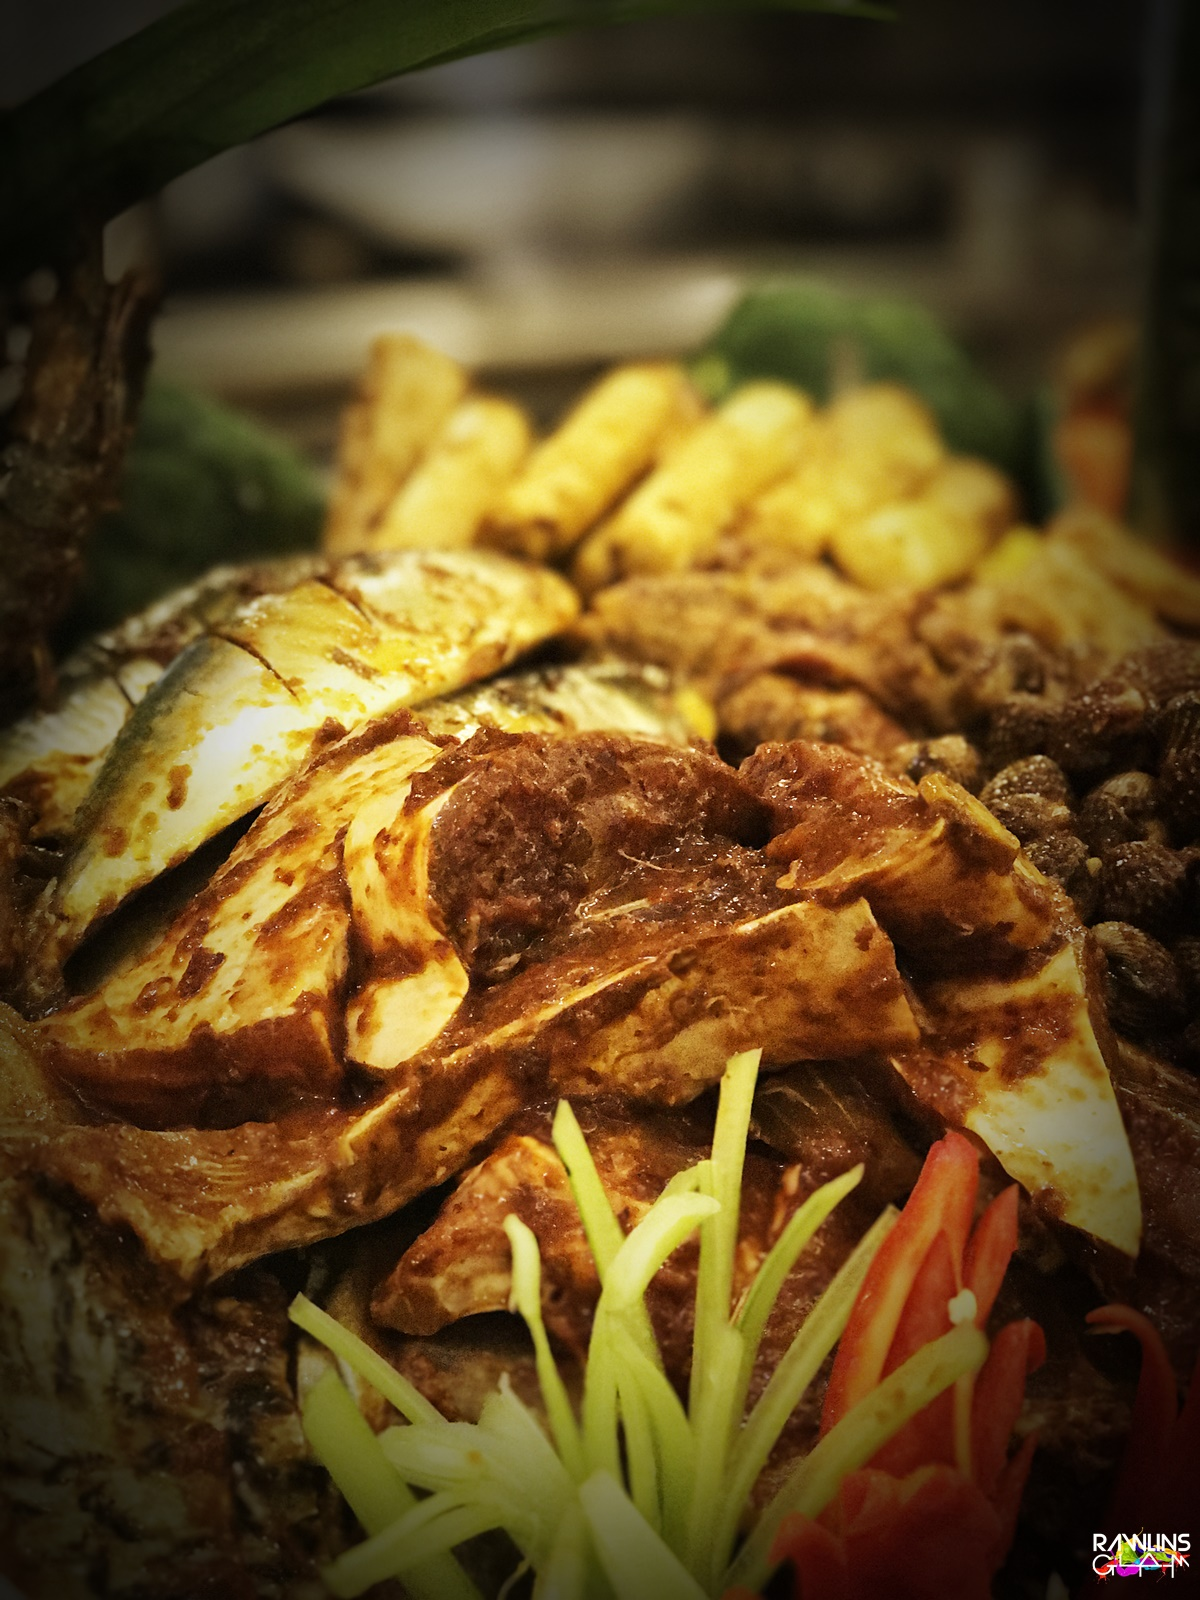 Hawker style, Grill Part, Palace of the Golden Horses, Food Review, Foodie, Rawlins GLAm, fresh seafood, quality meat, international dishes, malaysian food, great malaysian food,